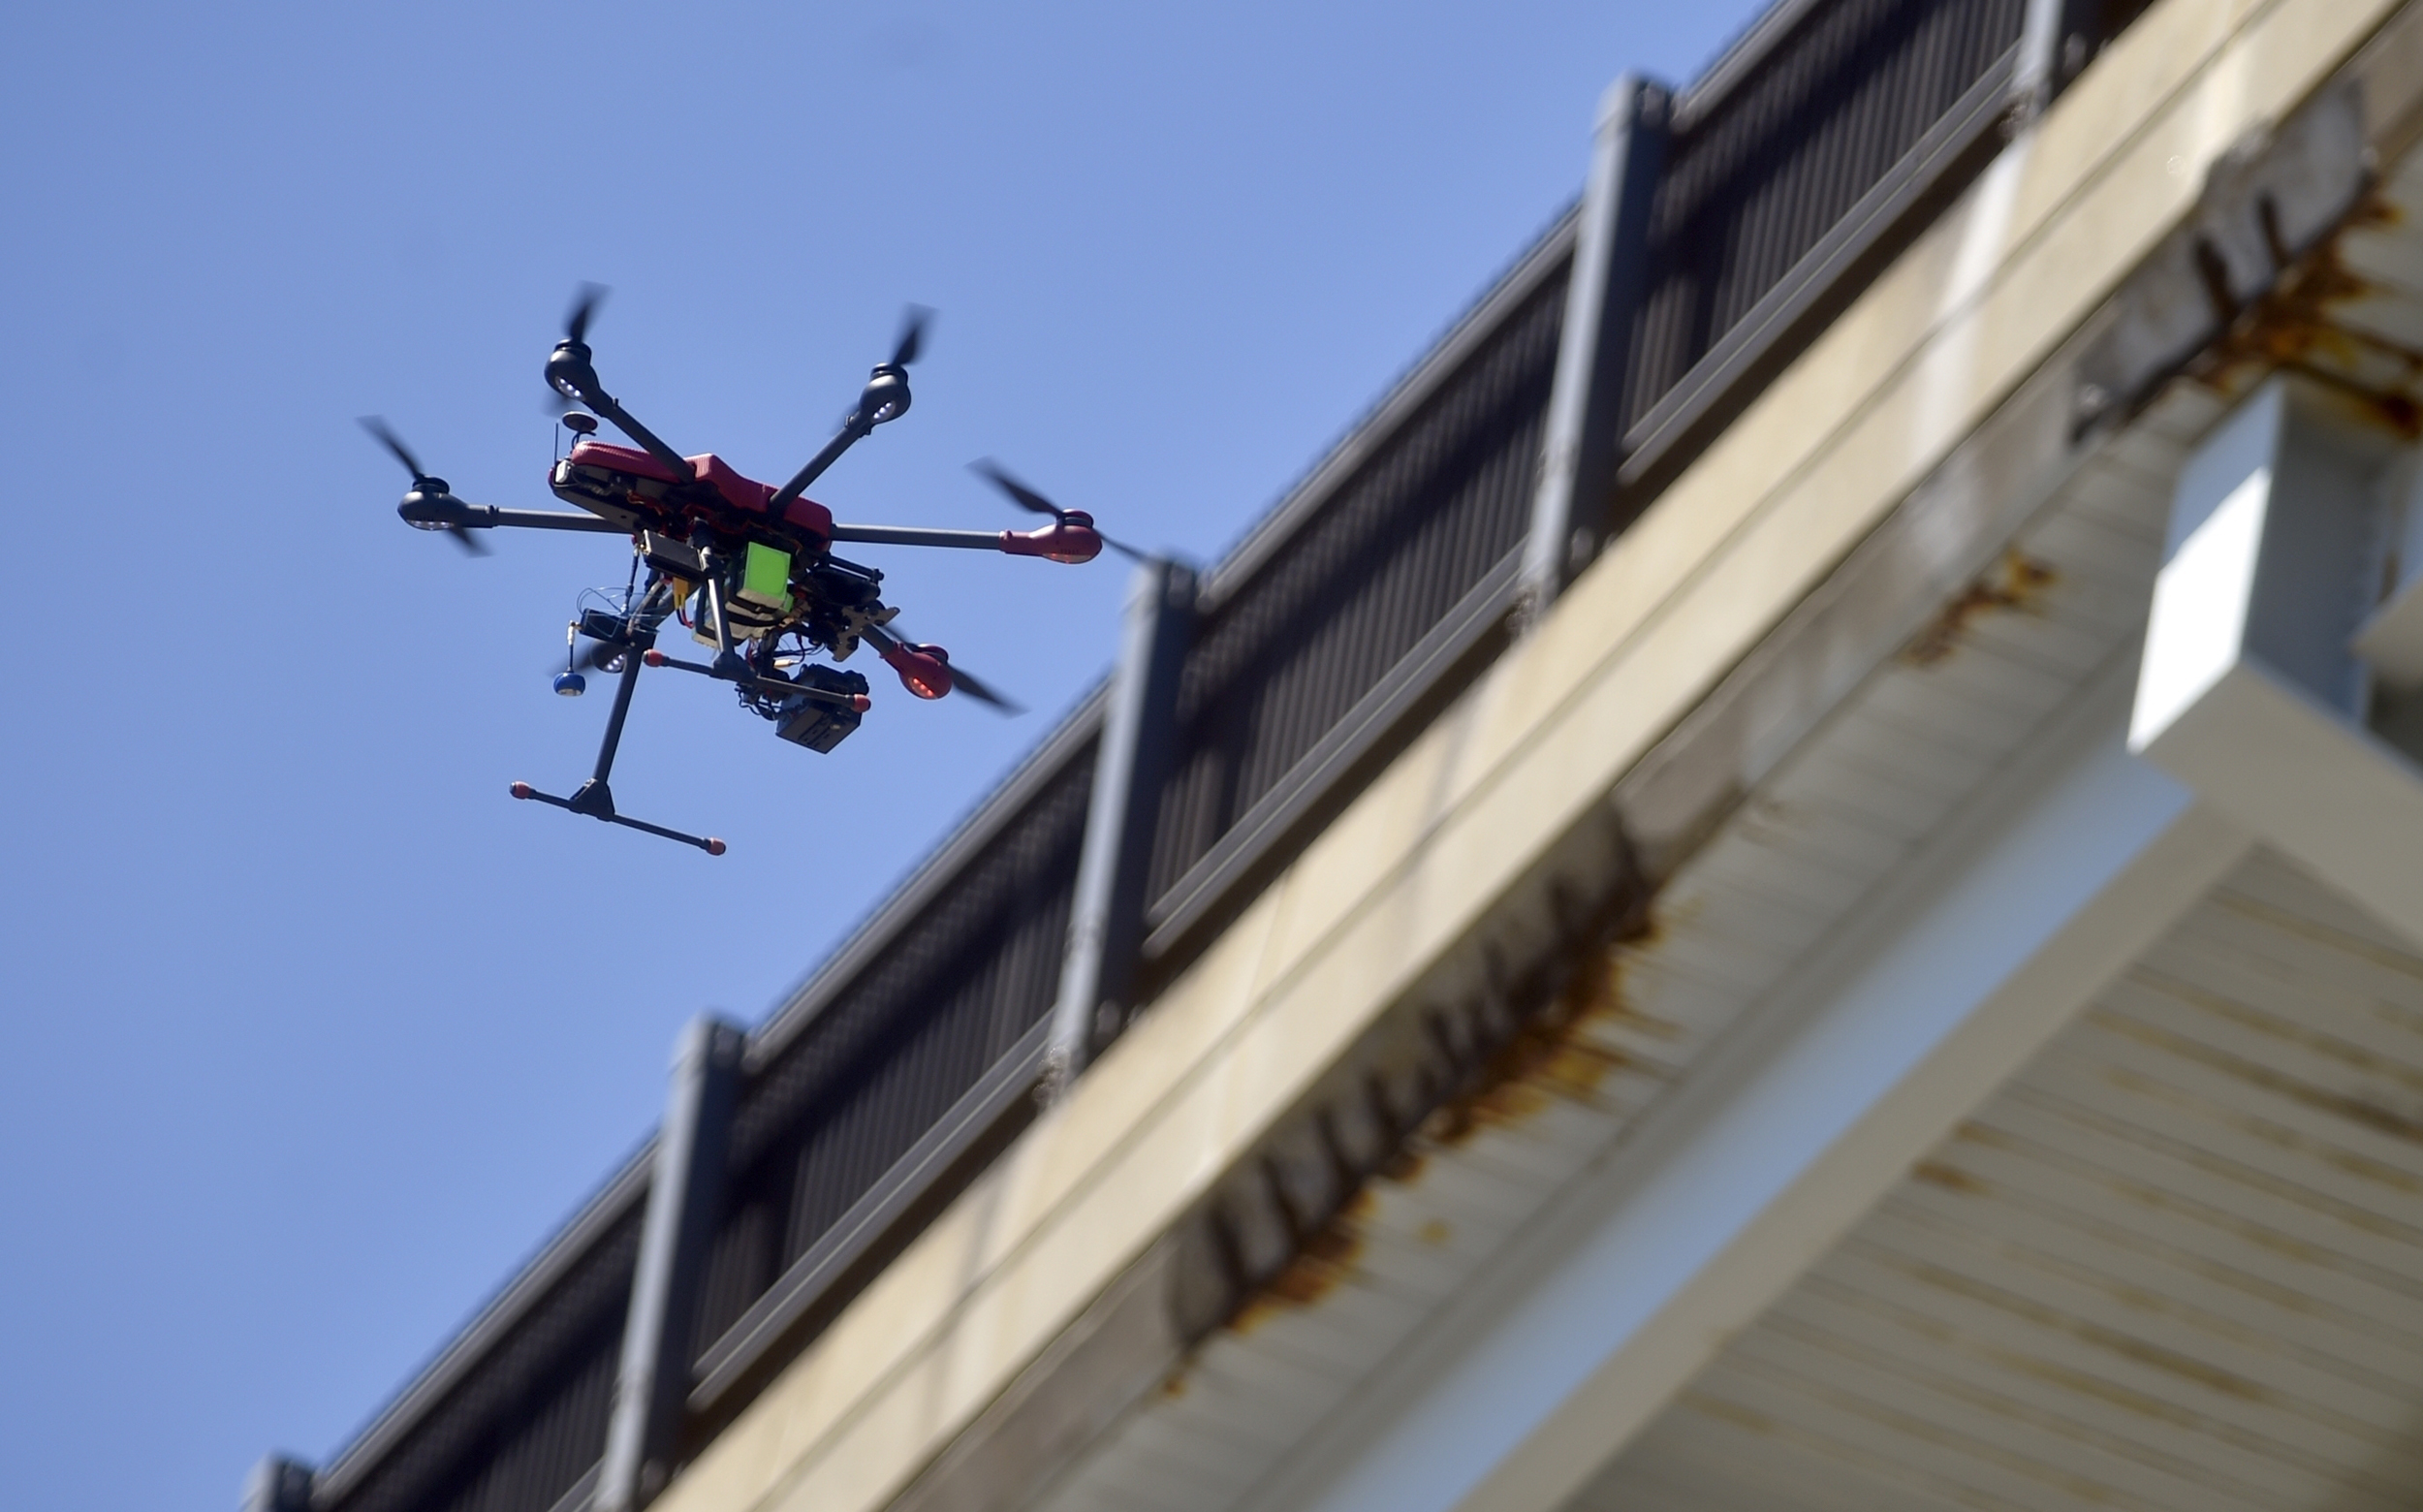 'We Have to Do Something Now': Lawmakers Push for Weaponized Drones